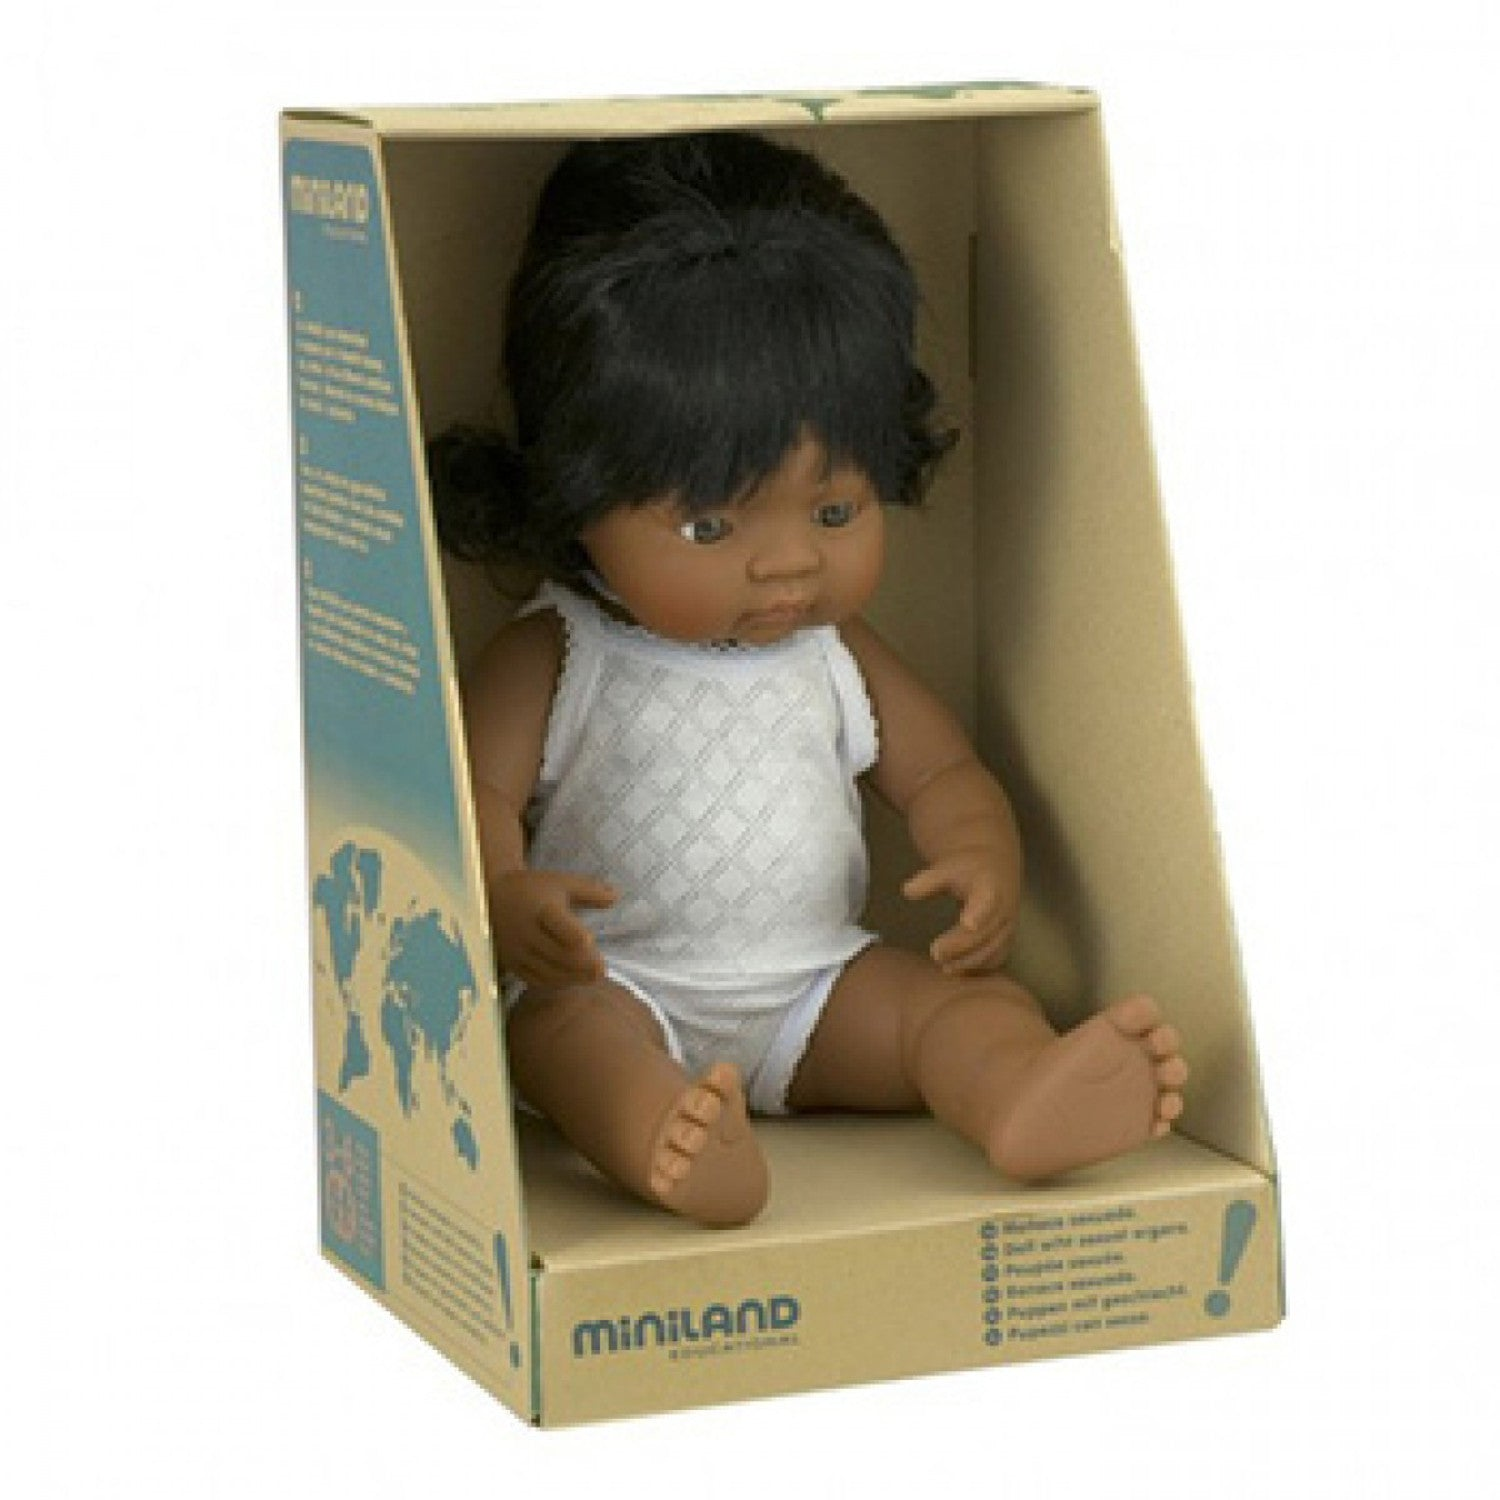 Miniland Doll 38cm Hispanic Girl Boxed